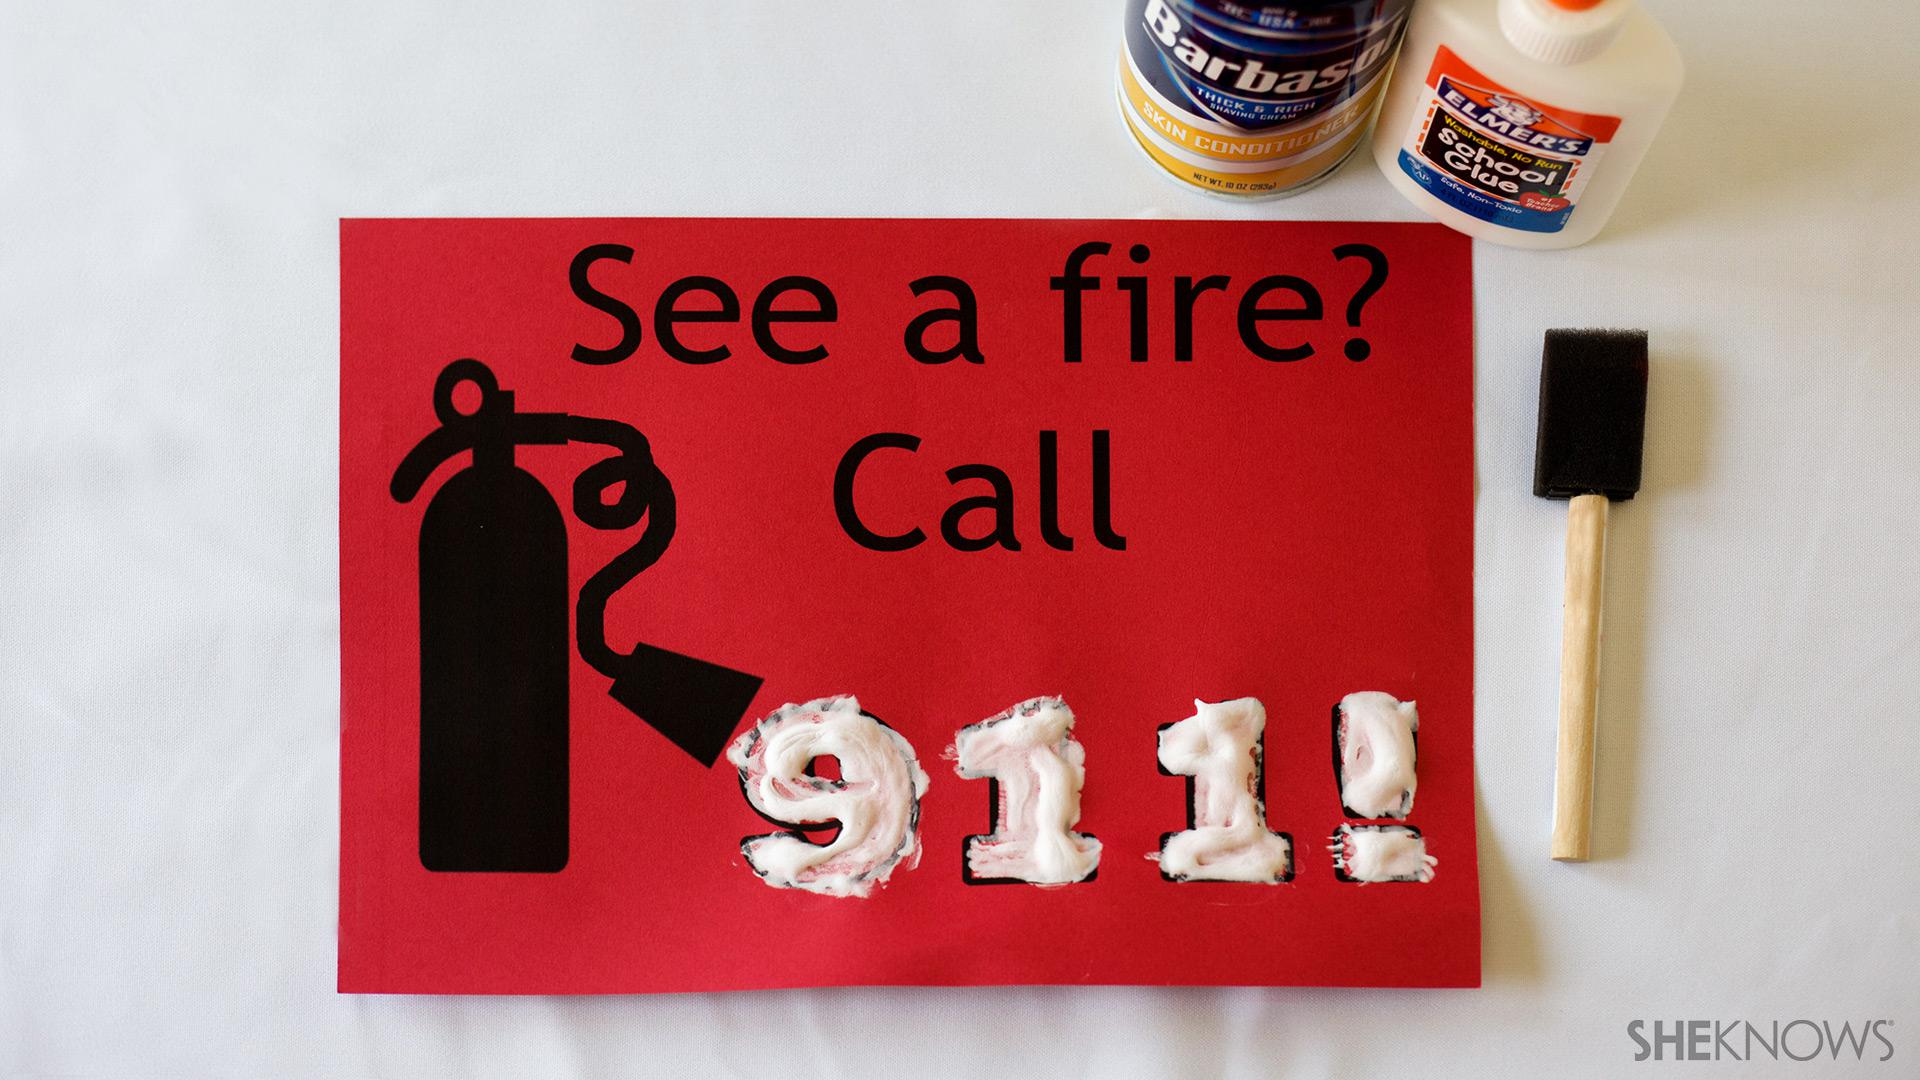 Fire safety crafts for kids – SheKnows